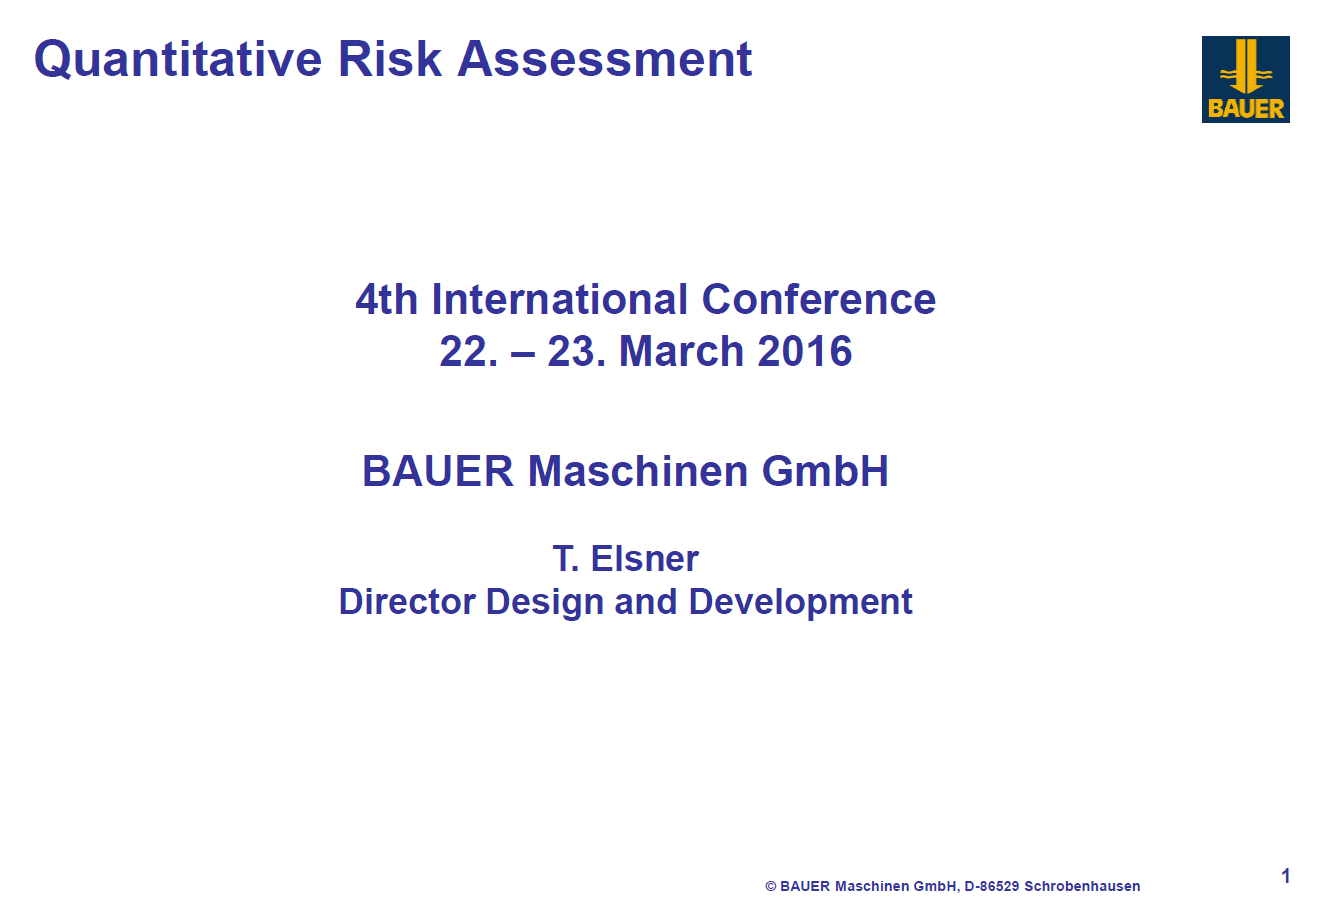 Bauer Maschinen presentation on comparison of the risk assessments of different safety standards for non-road vehicle